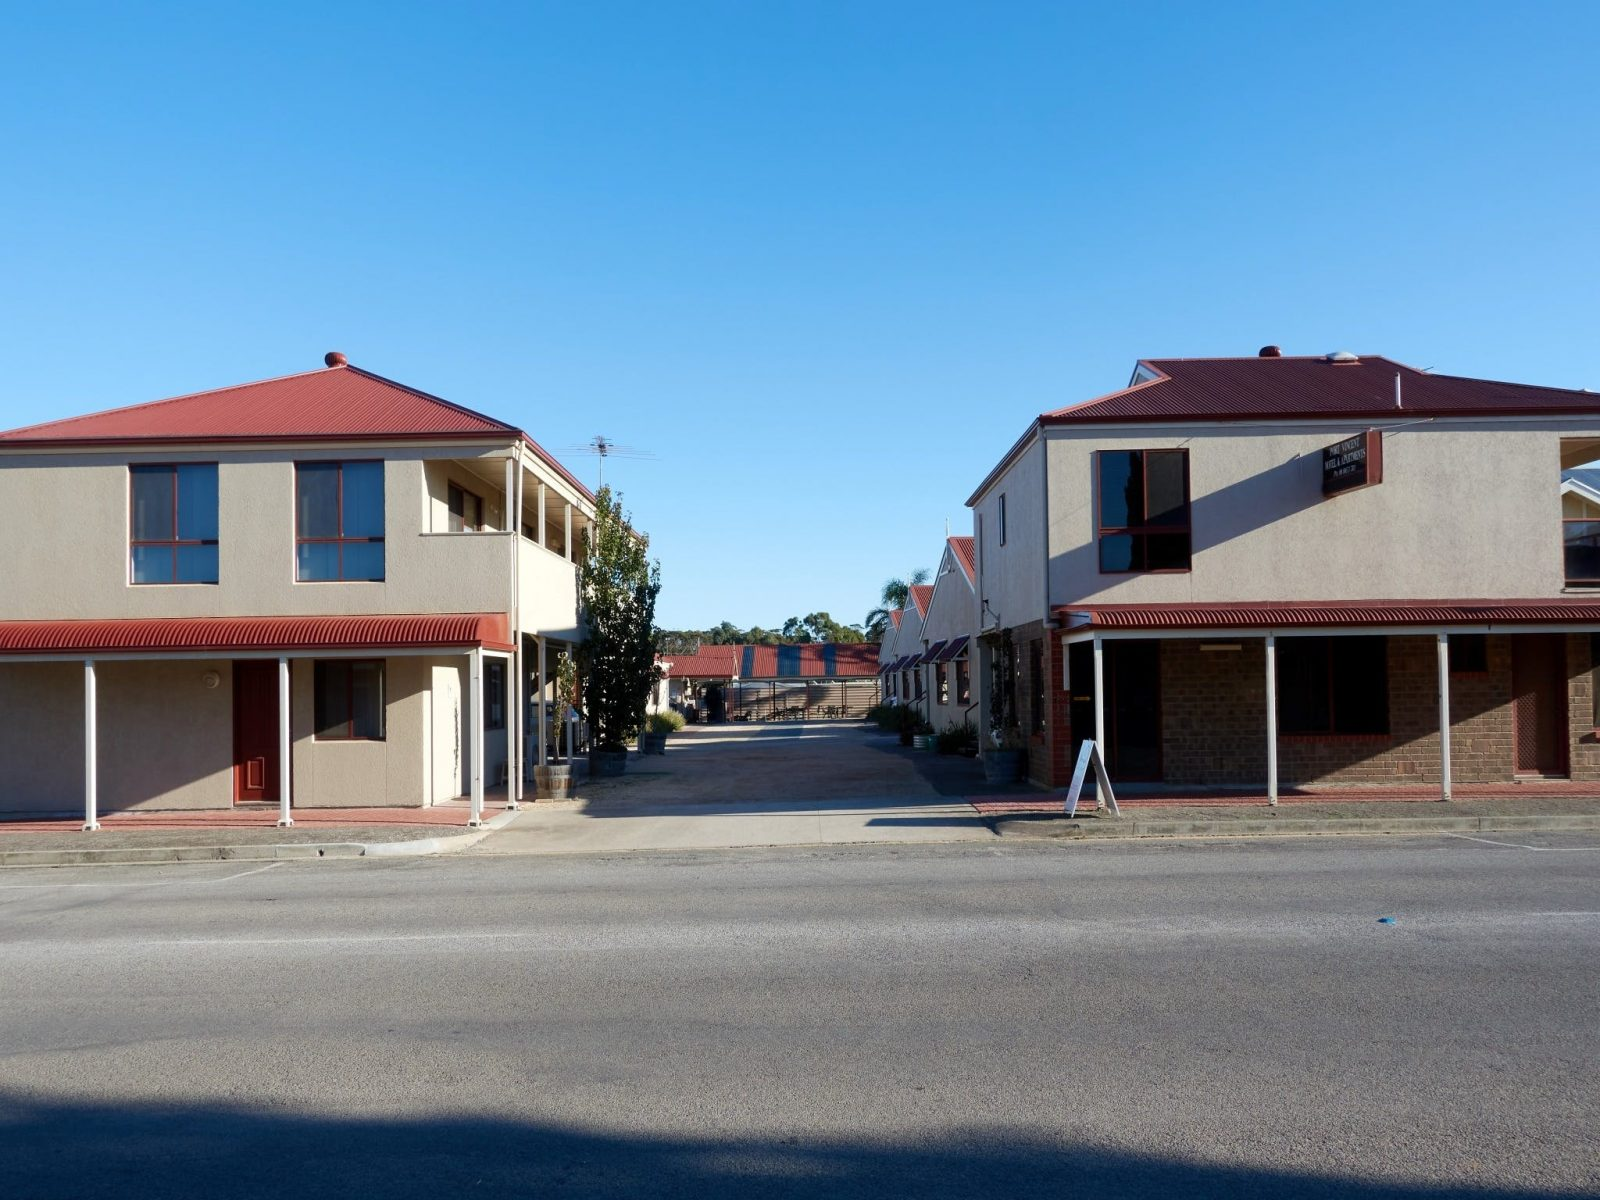 Entrance to Port Vincent Motel and Apartments